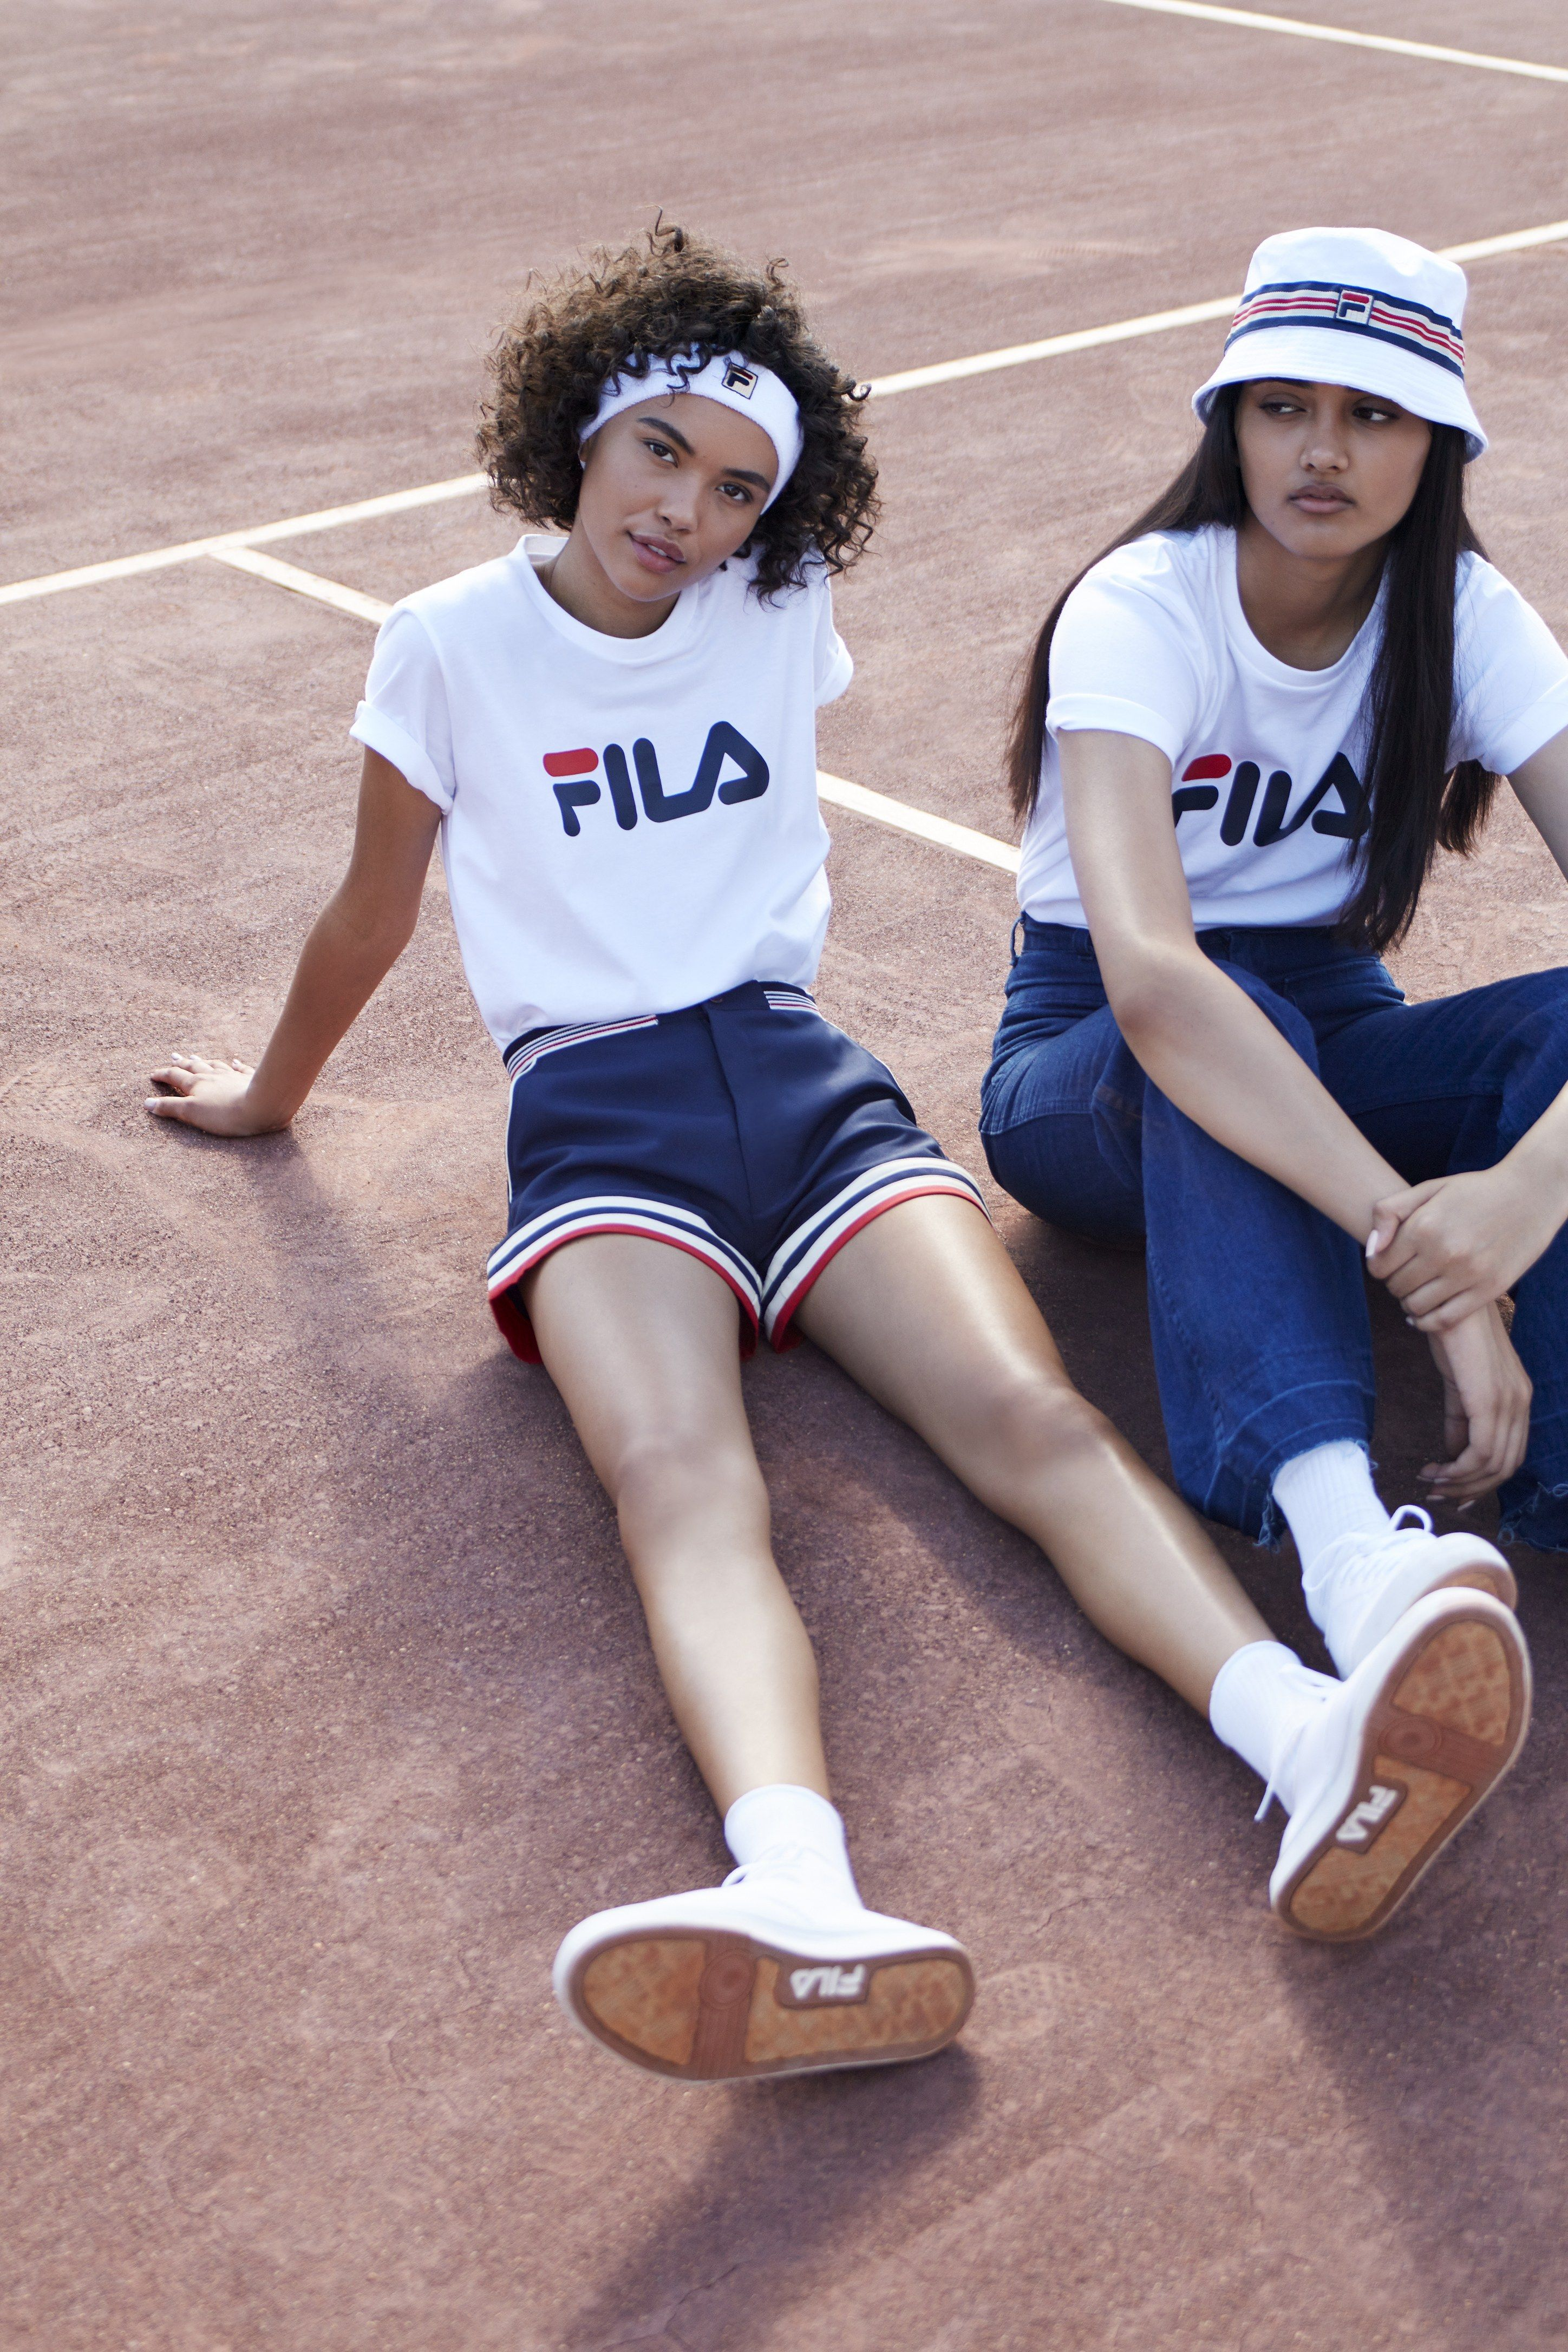 dd49cbae0701 FILA + Urban Outfitters Team Up for a Tennis-Inspired Collection